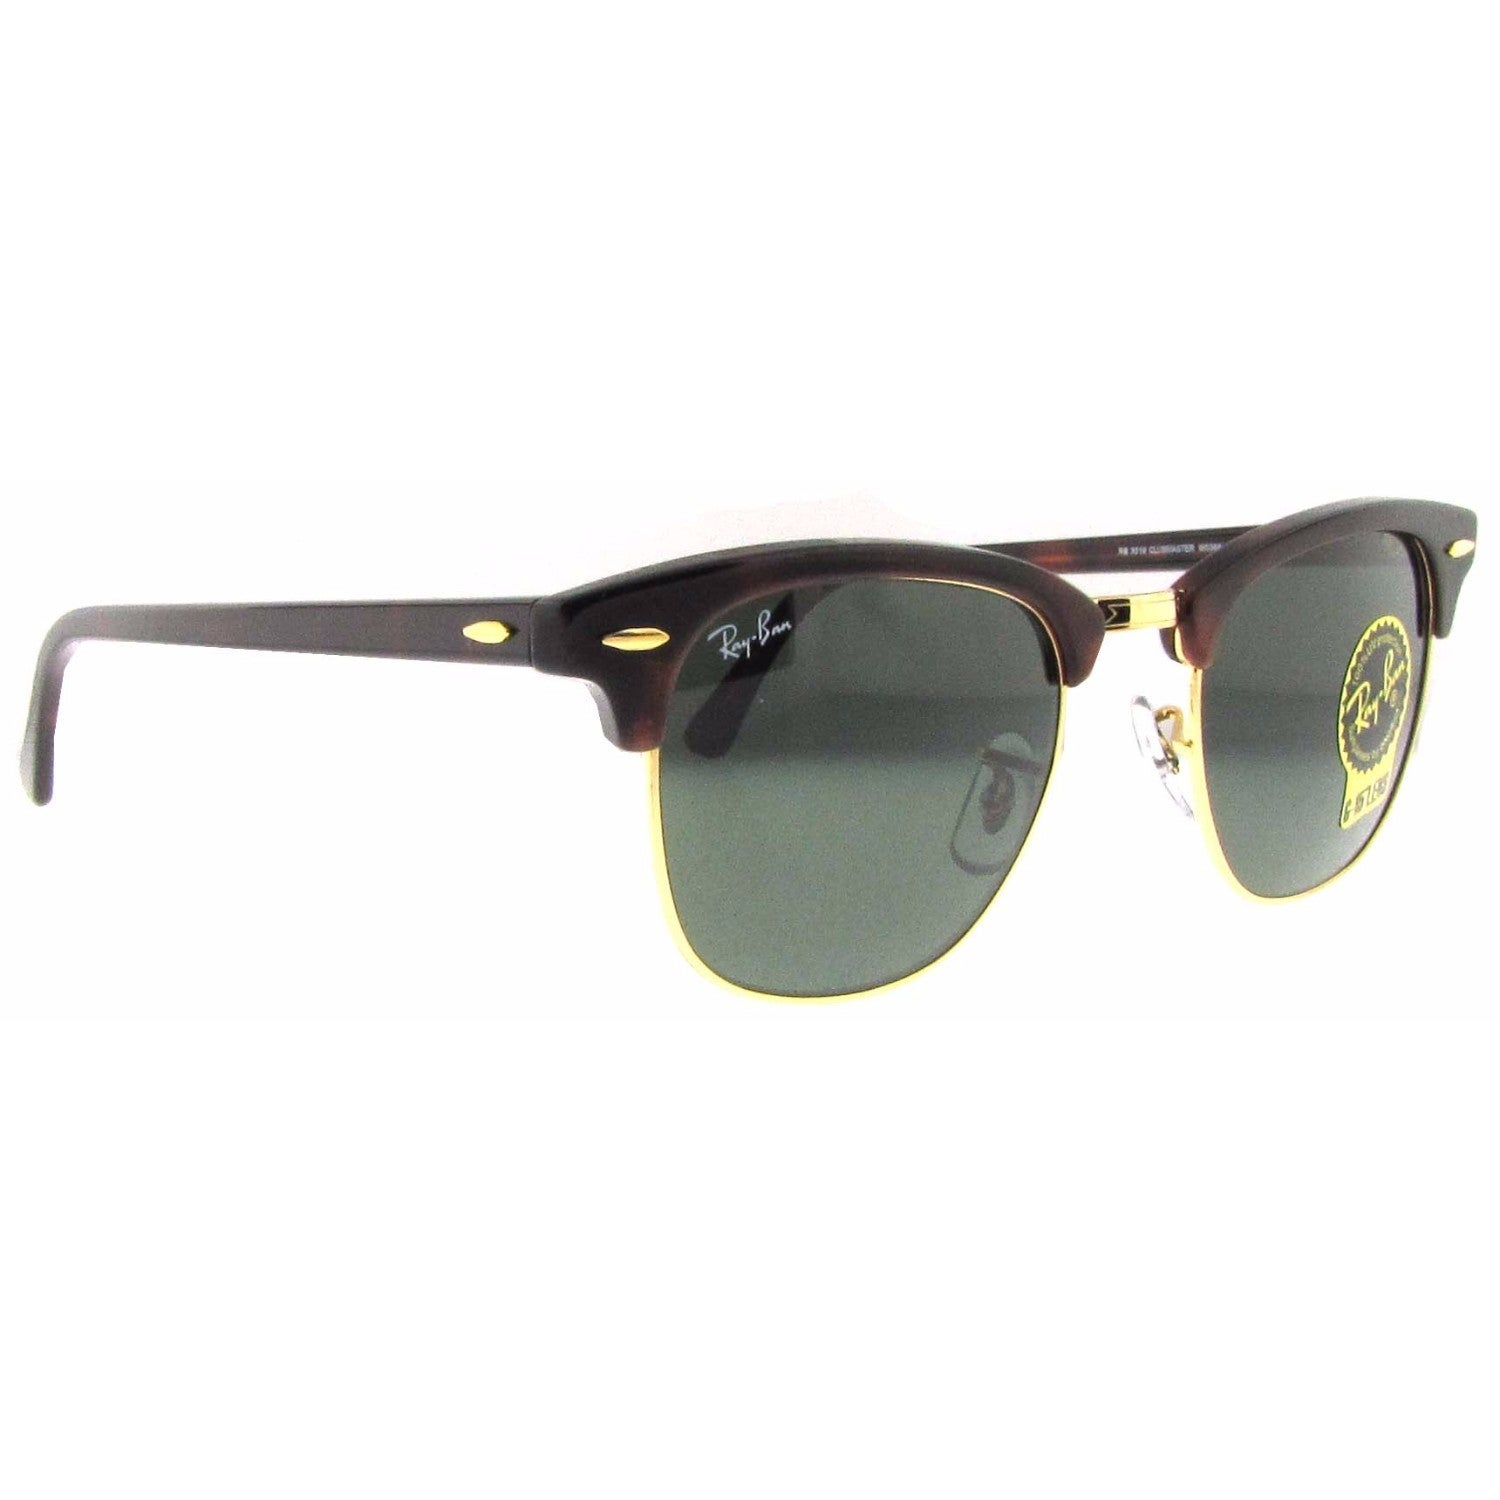 44d13182665 Shop Ray-Ban Clubmaster RB 3016 Unisex Tortoise Frame Green Classic Lens  Sunglasses - Free Shipping Today - Overstock - 6852790